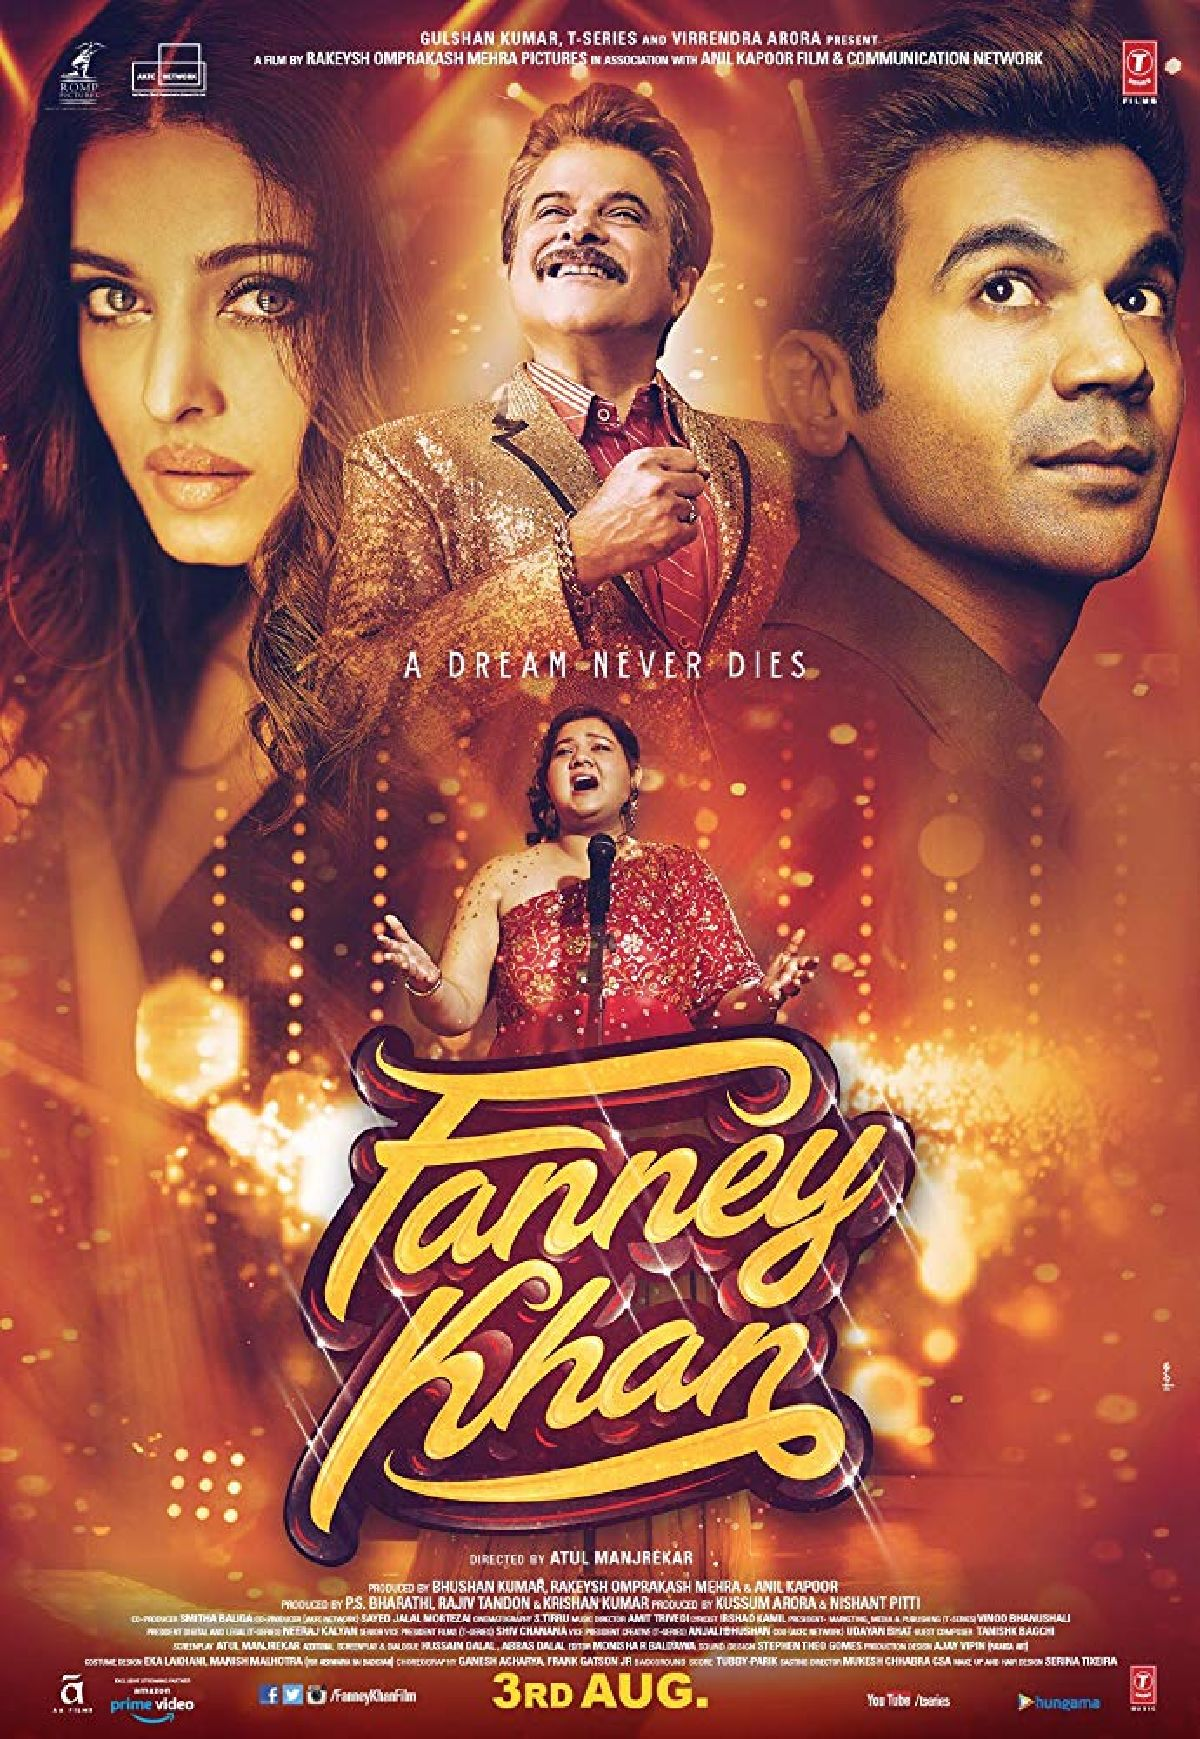 'Fanney Khan' movie poster